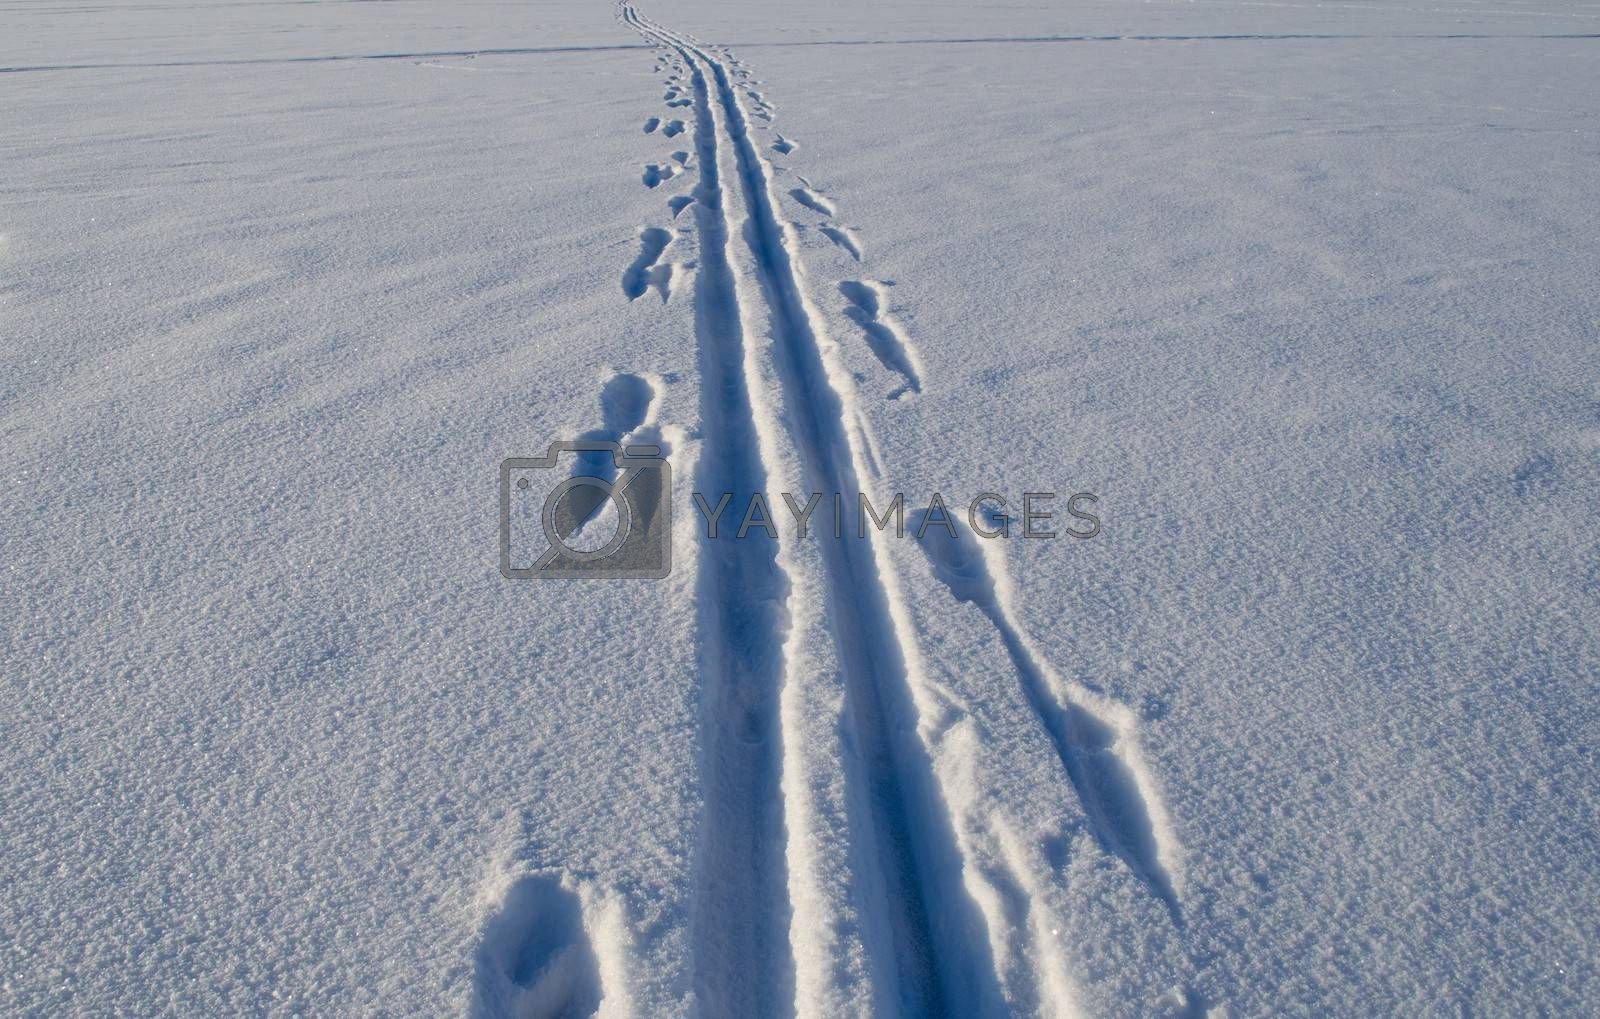 Ski tracks marks left on frozen lake snow in winter. Active recreation in nature.